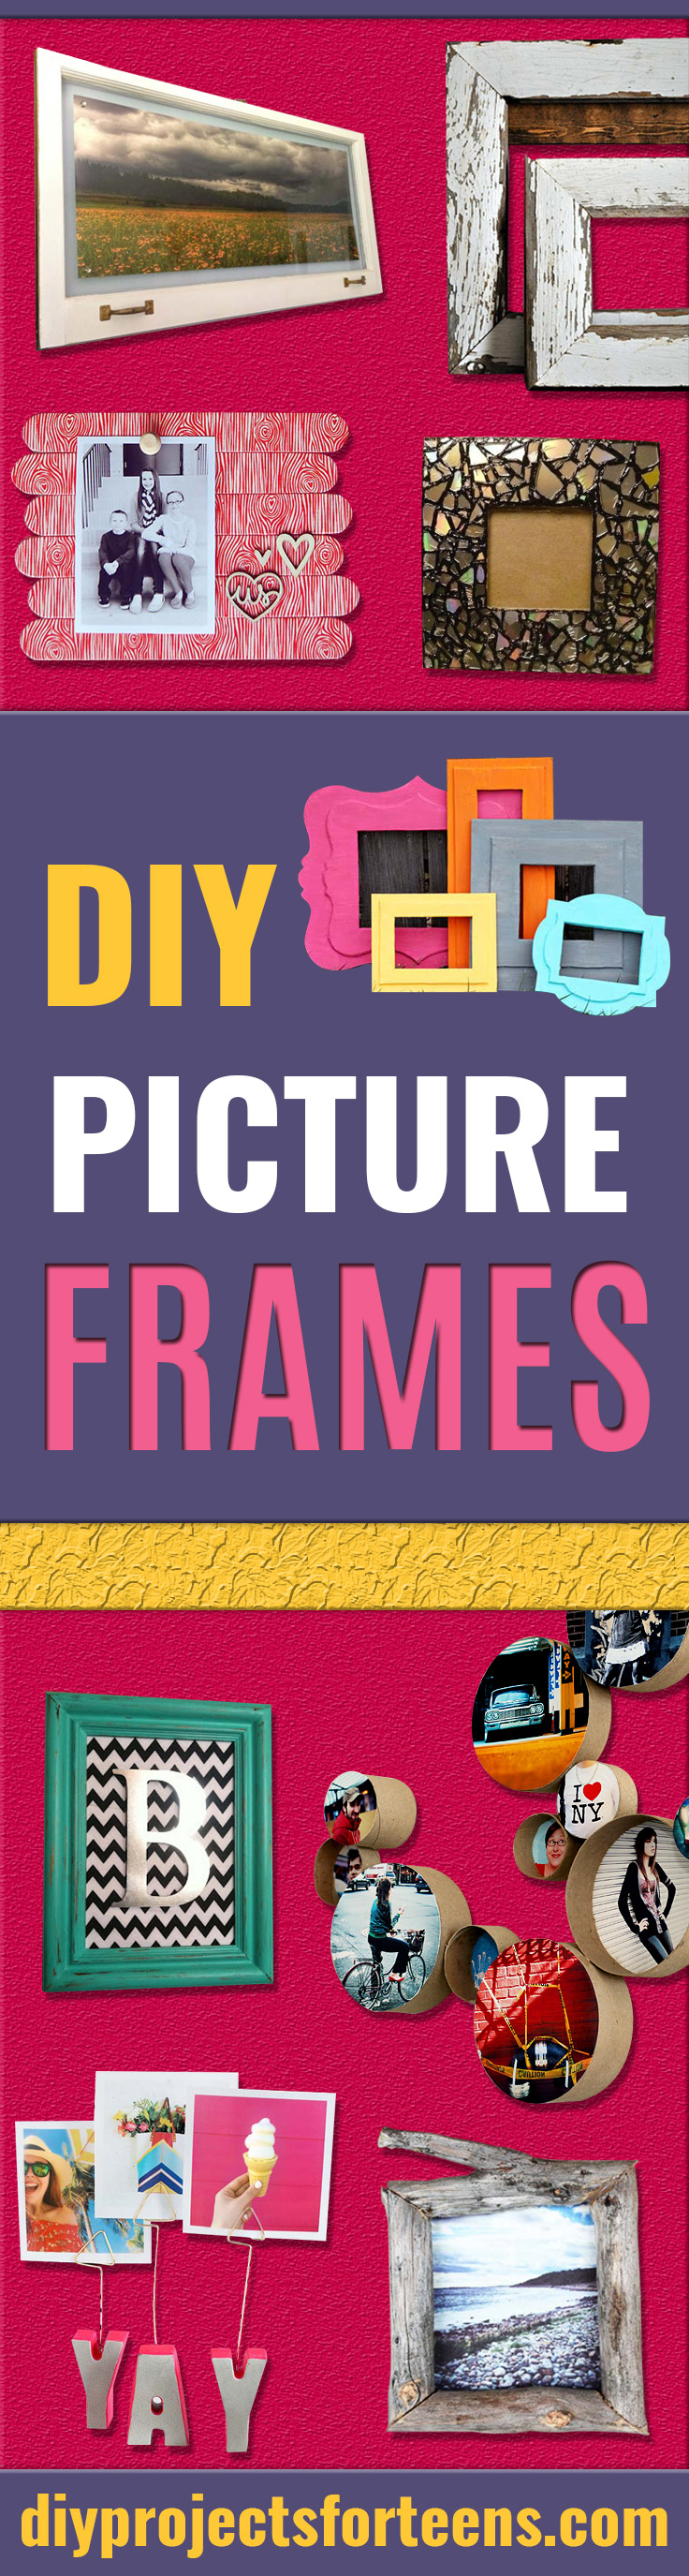 Creative Birthday Gifts Fun Crafts For Friends And Wall Art Tutorials Stagediyprojectsforteens Diy Picture Frames